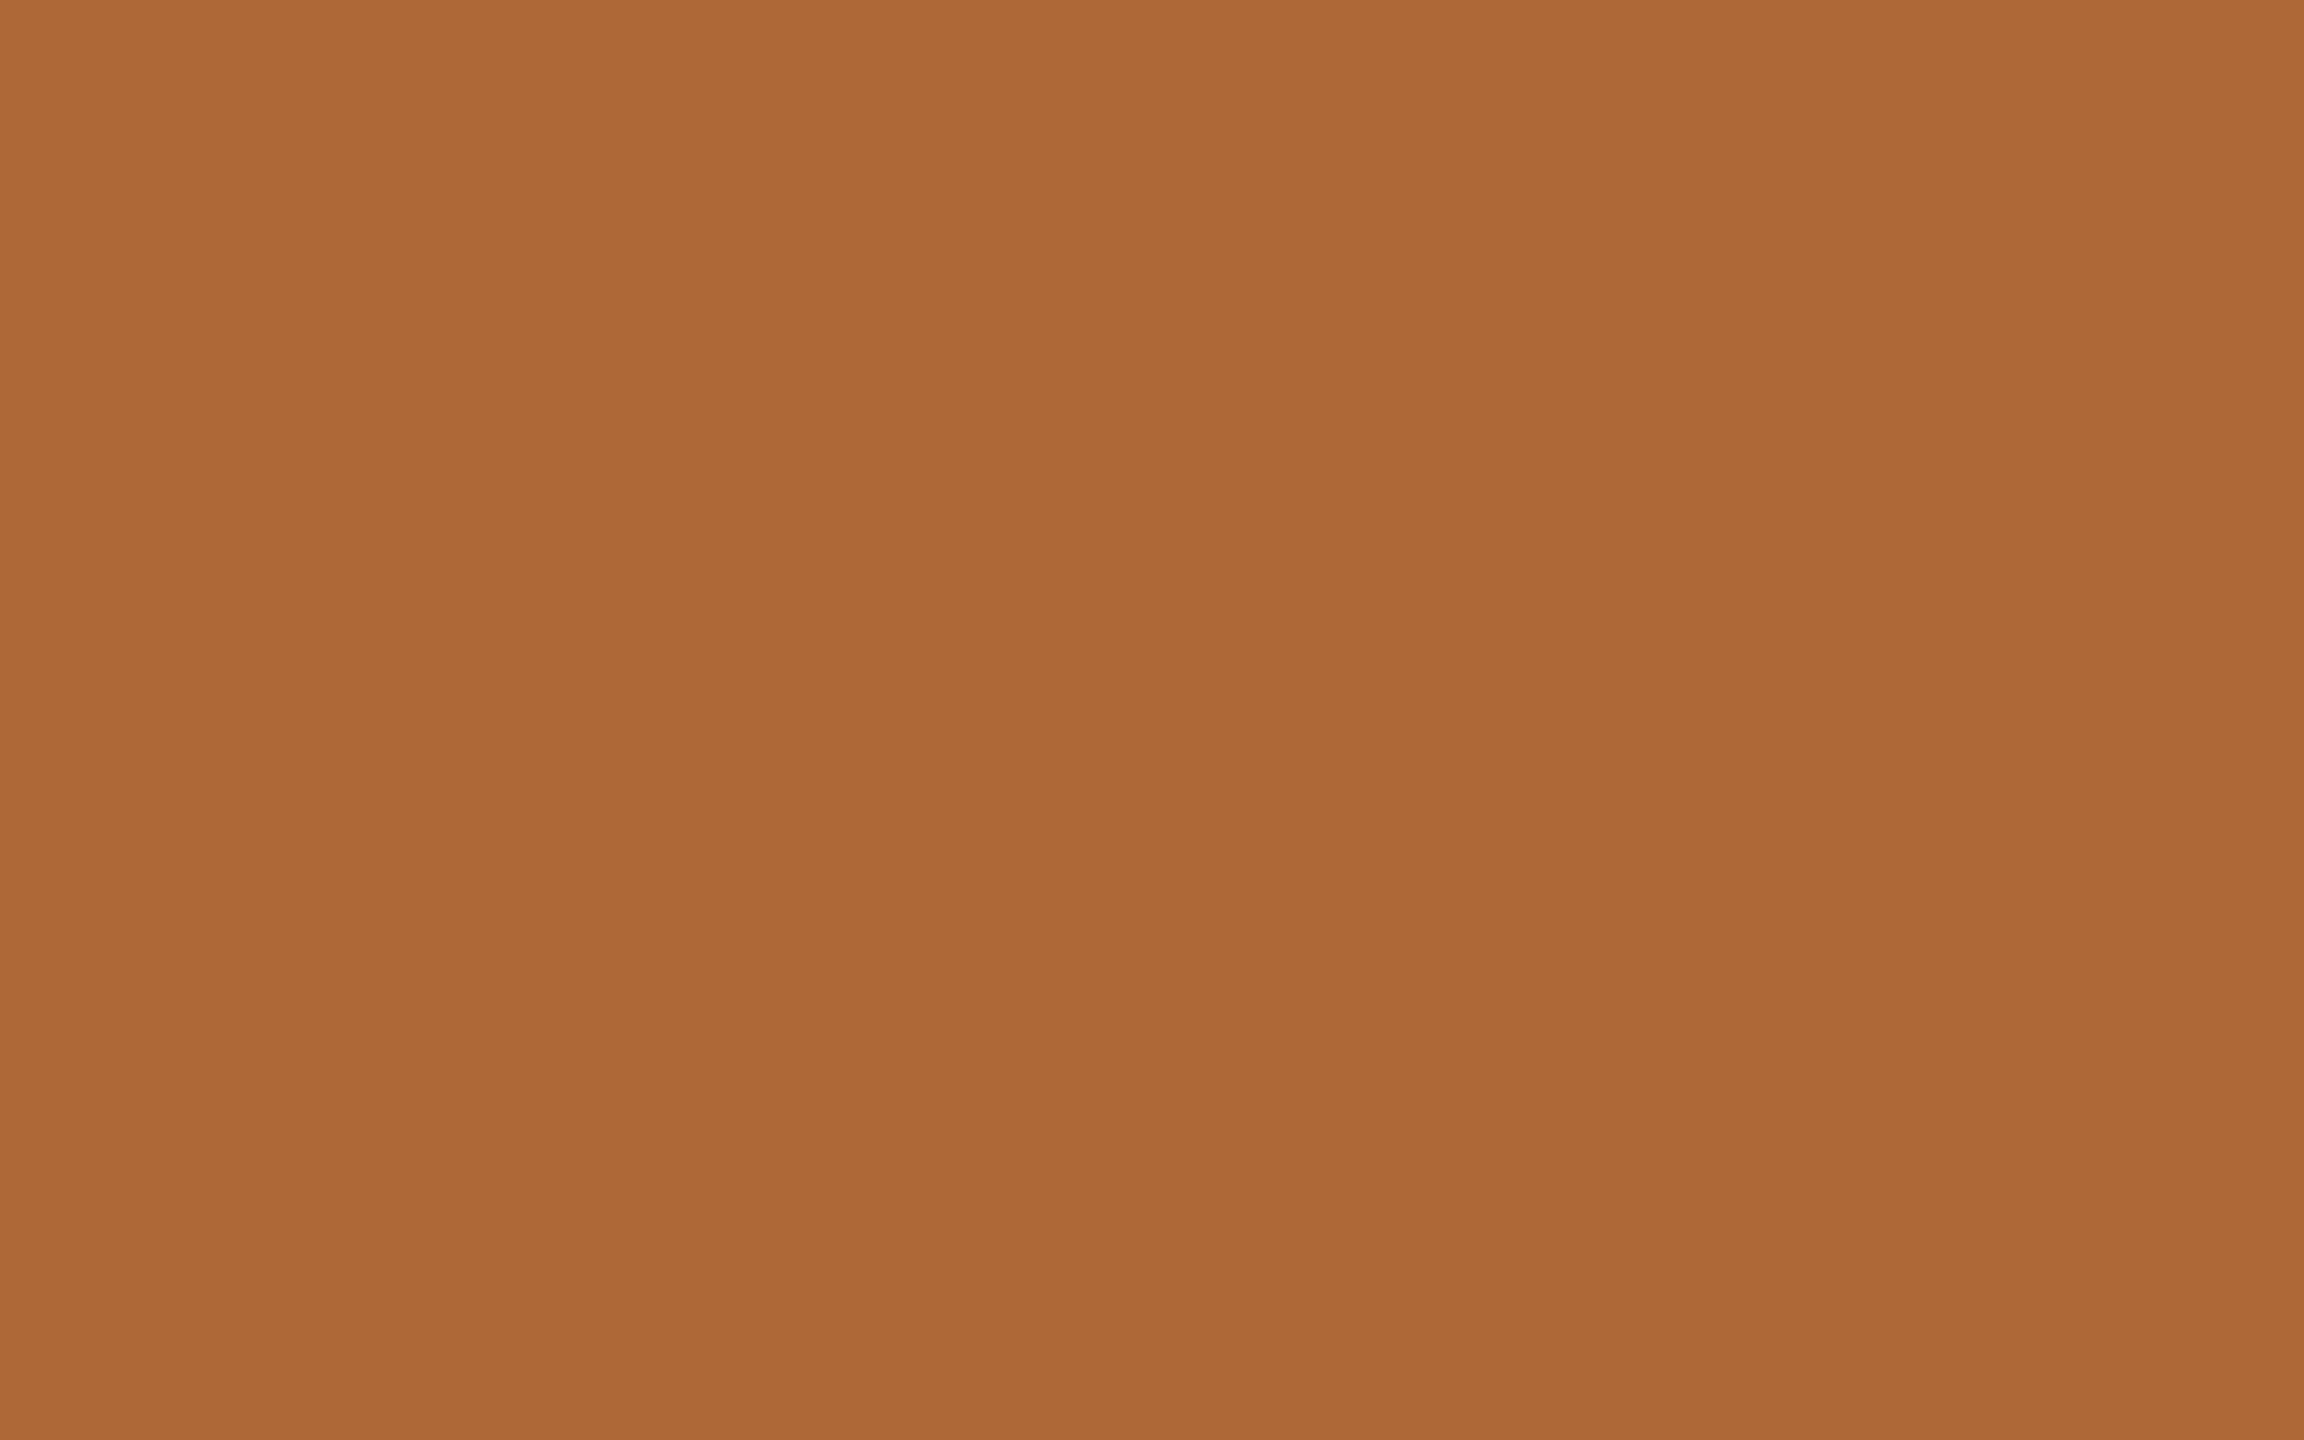 2304x1440 Windsor Tan Solid Color Background